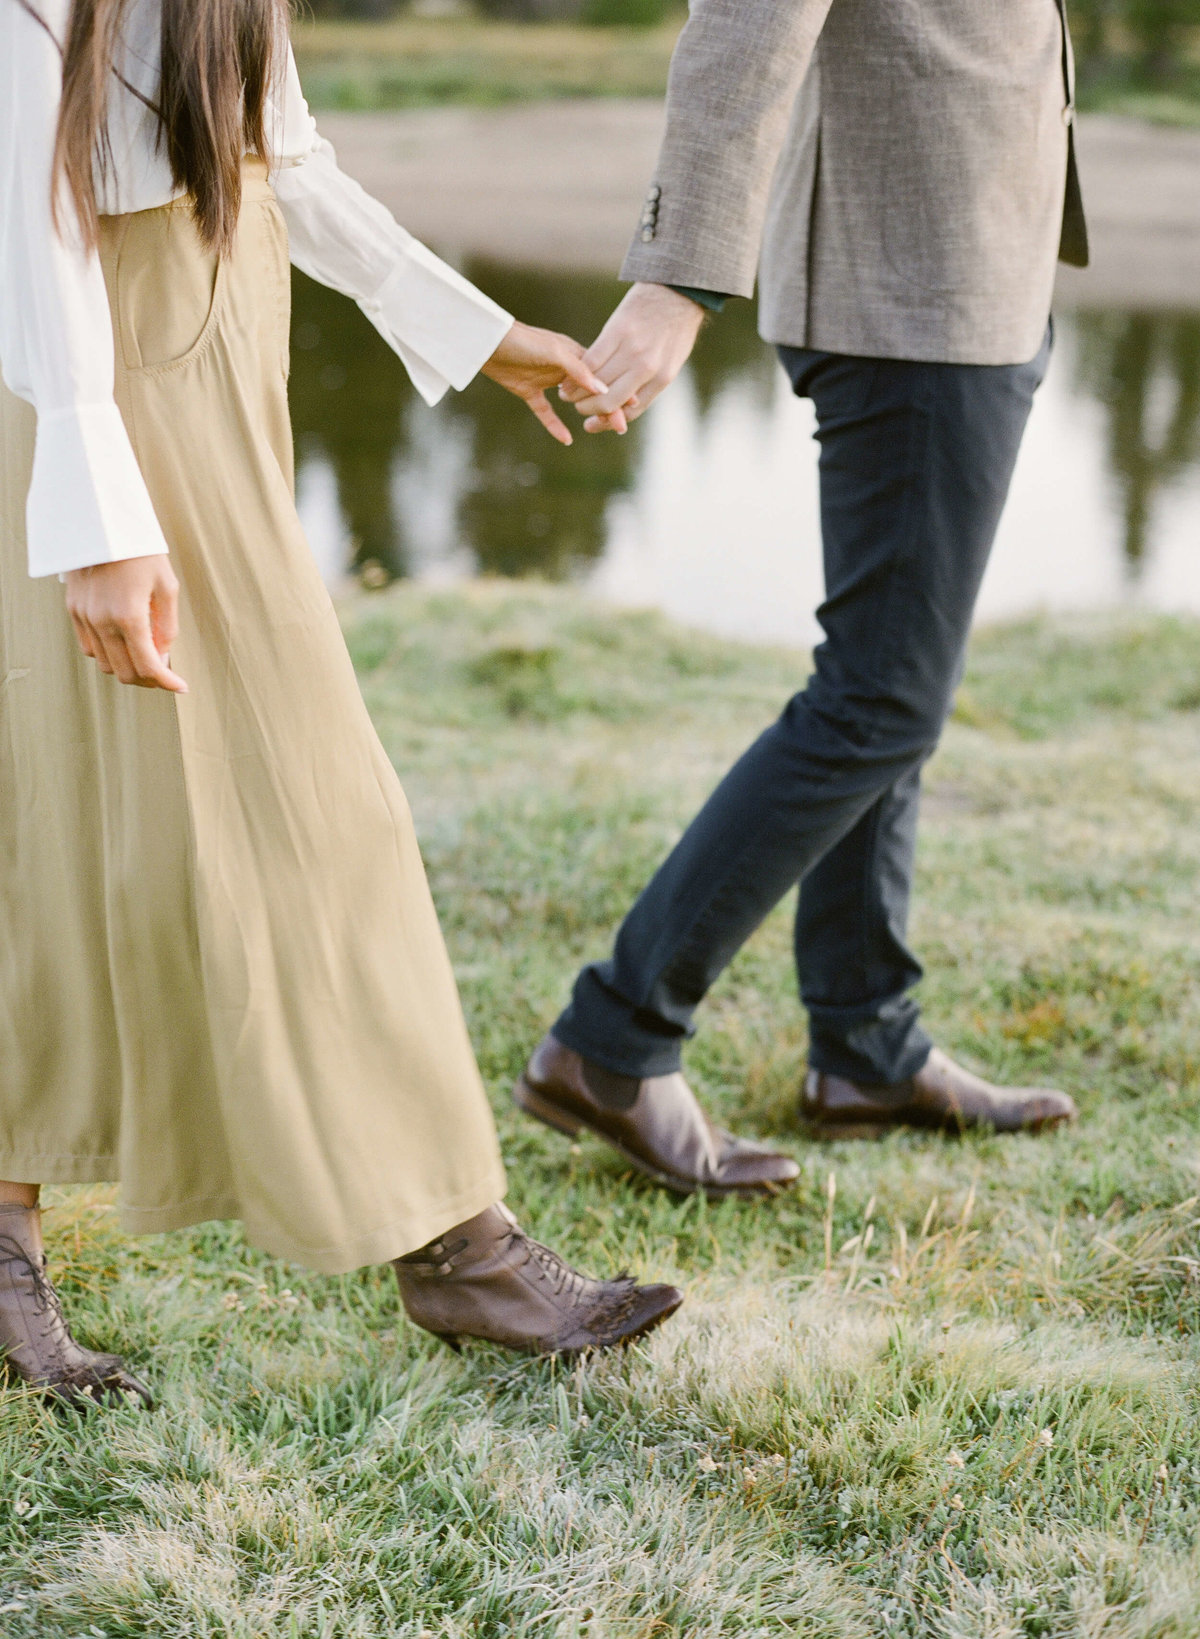 26-KTMerry-engagement-photography-holding-hands-Yosemite-park